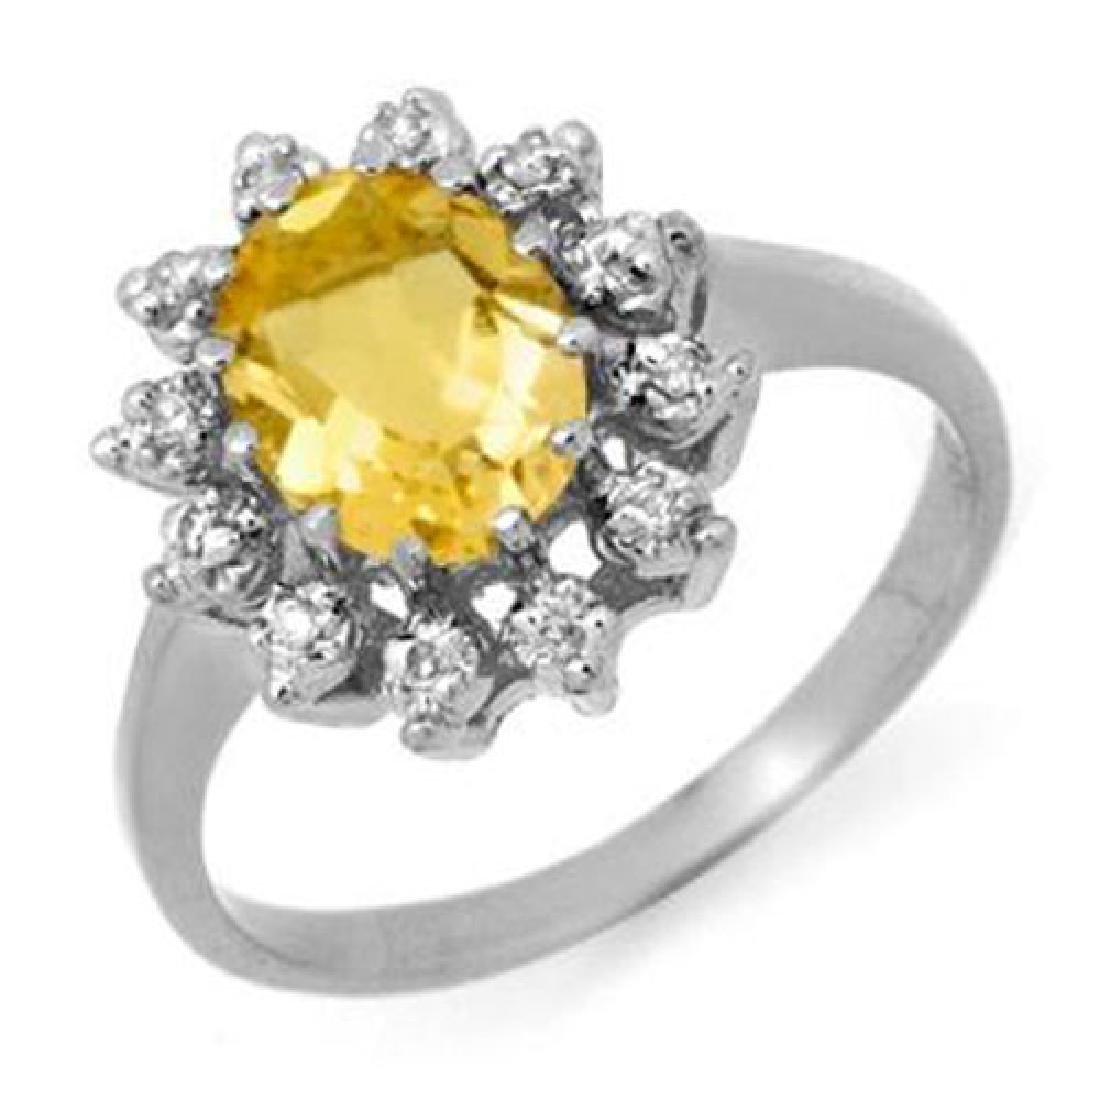 1.14 CTW Citrine & Diamond Ring 14K White Gold